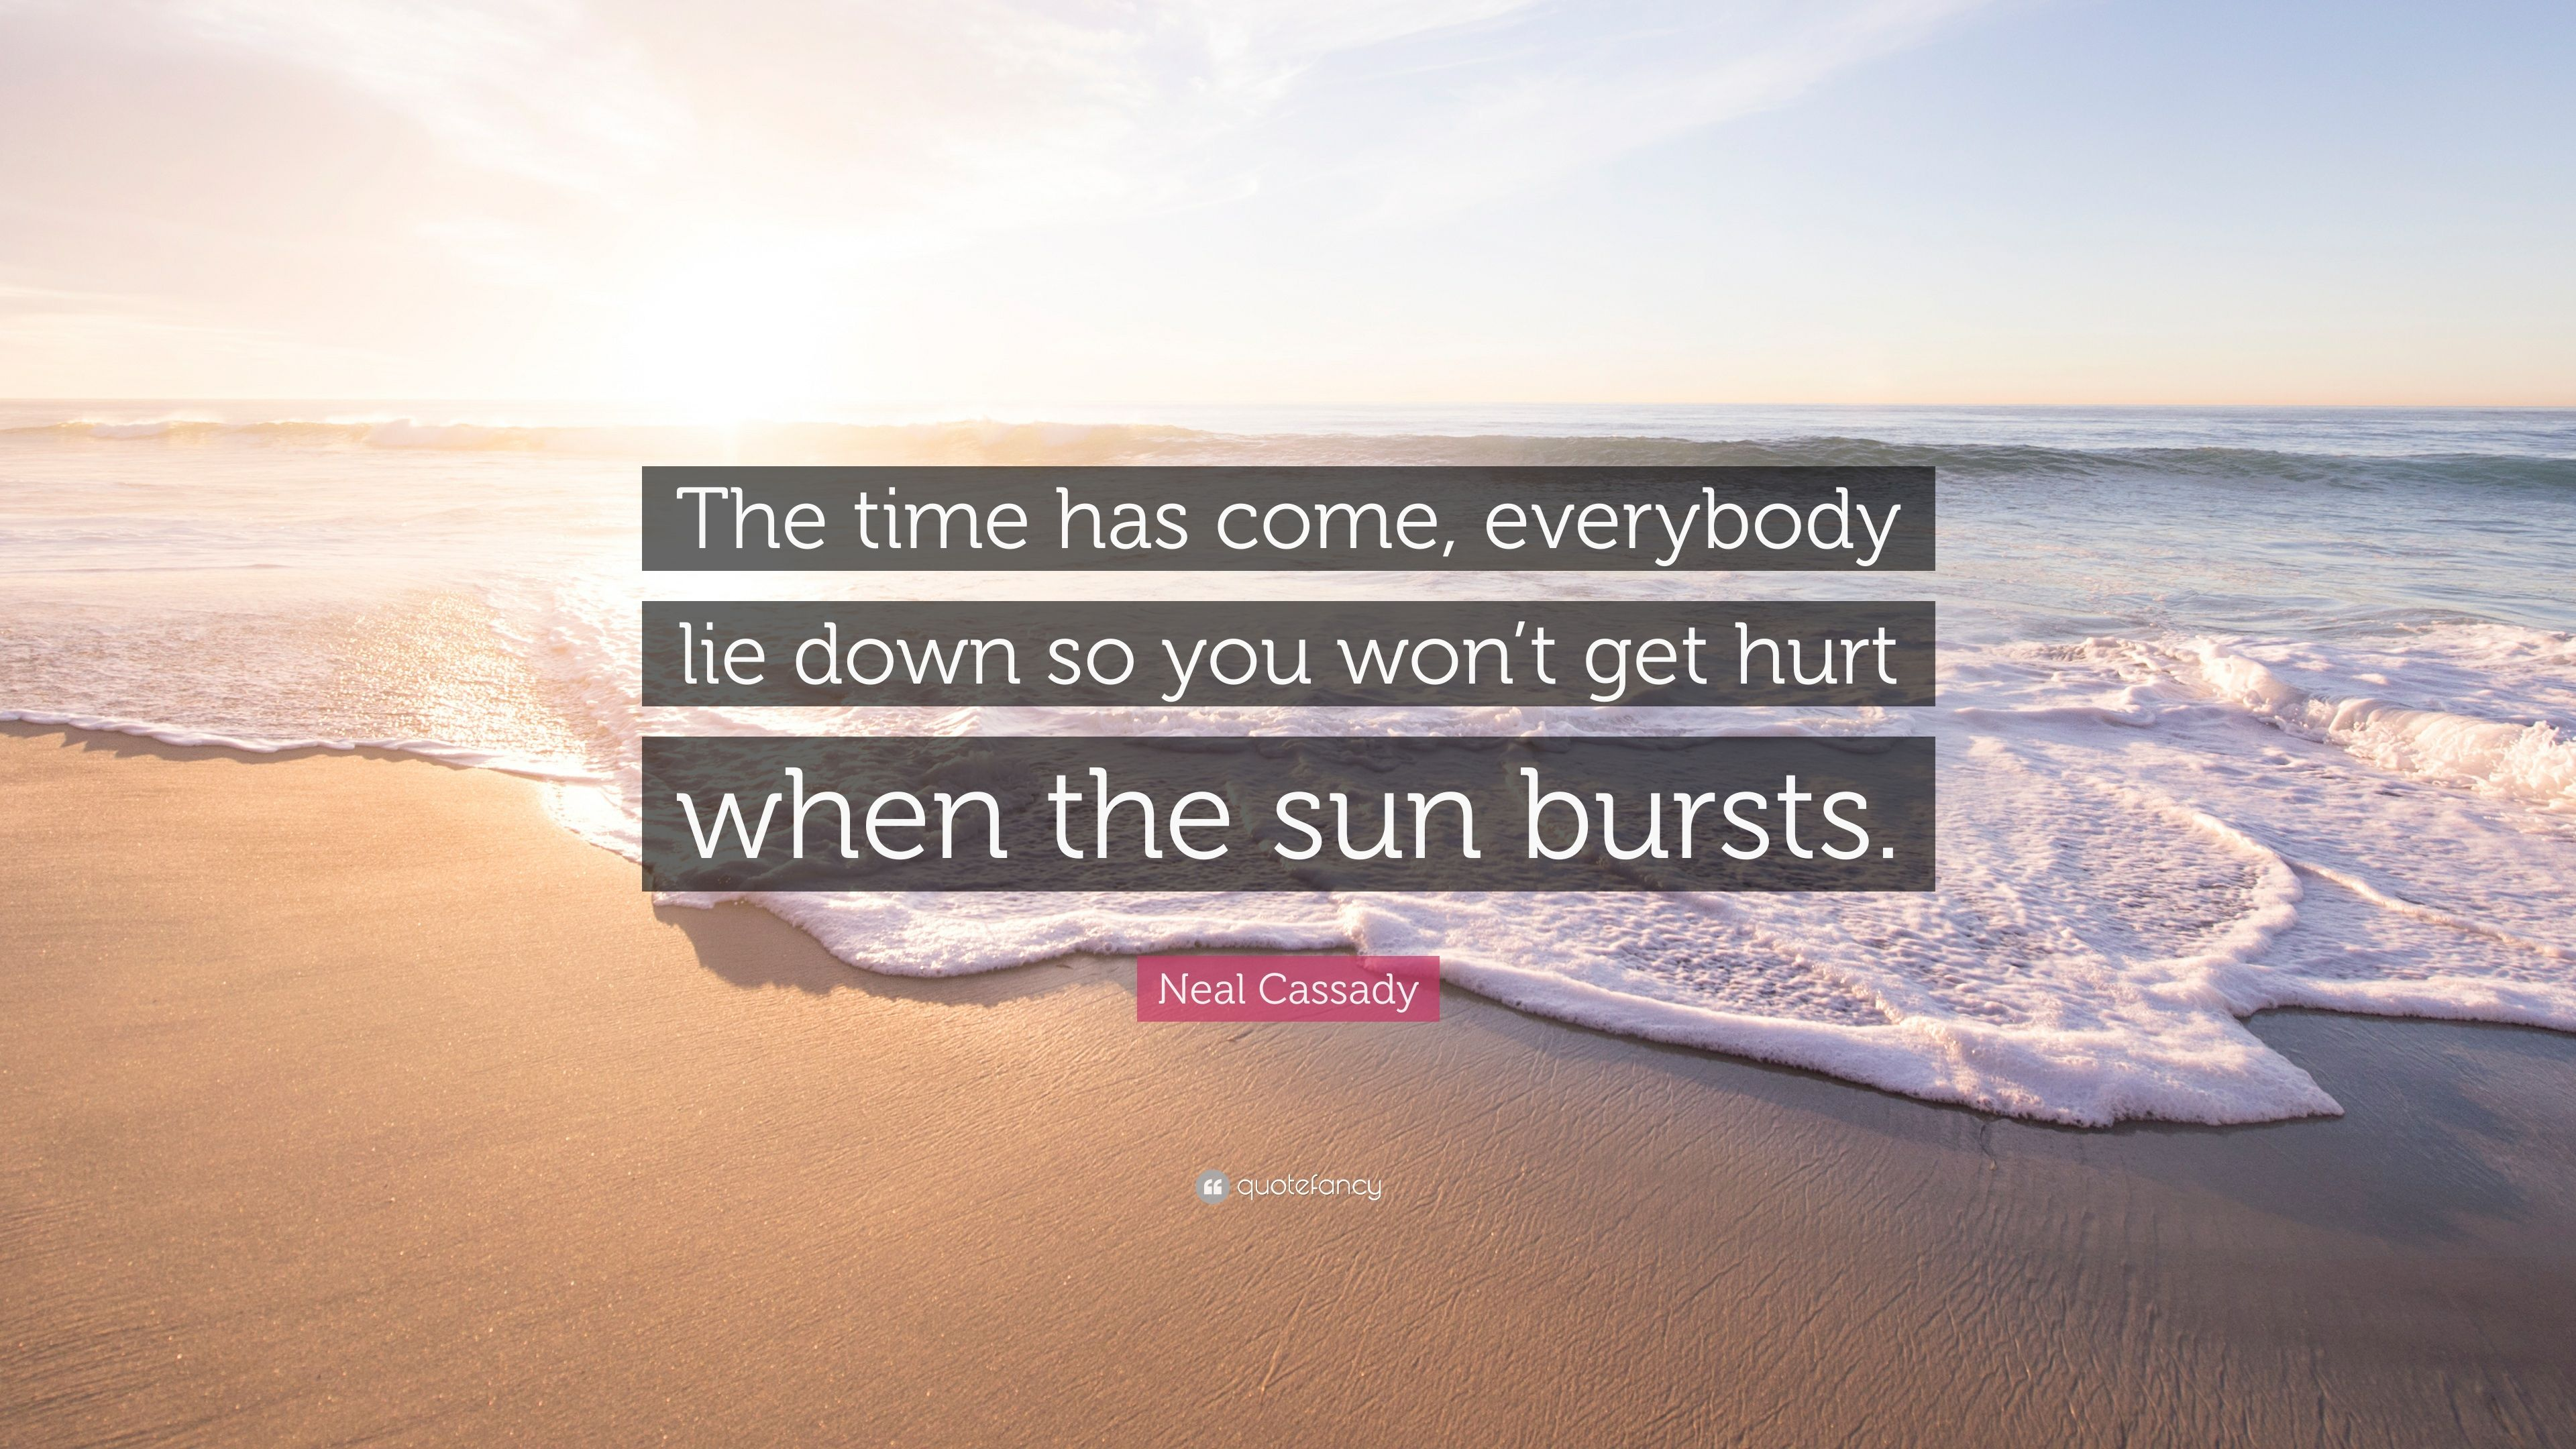 Neal Cassady Quote: U201cThe Time Has Come, Everybody Lie Down So You Won